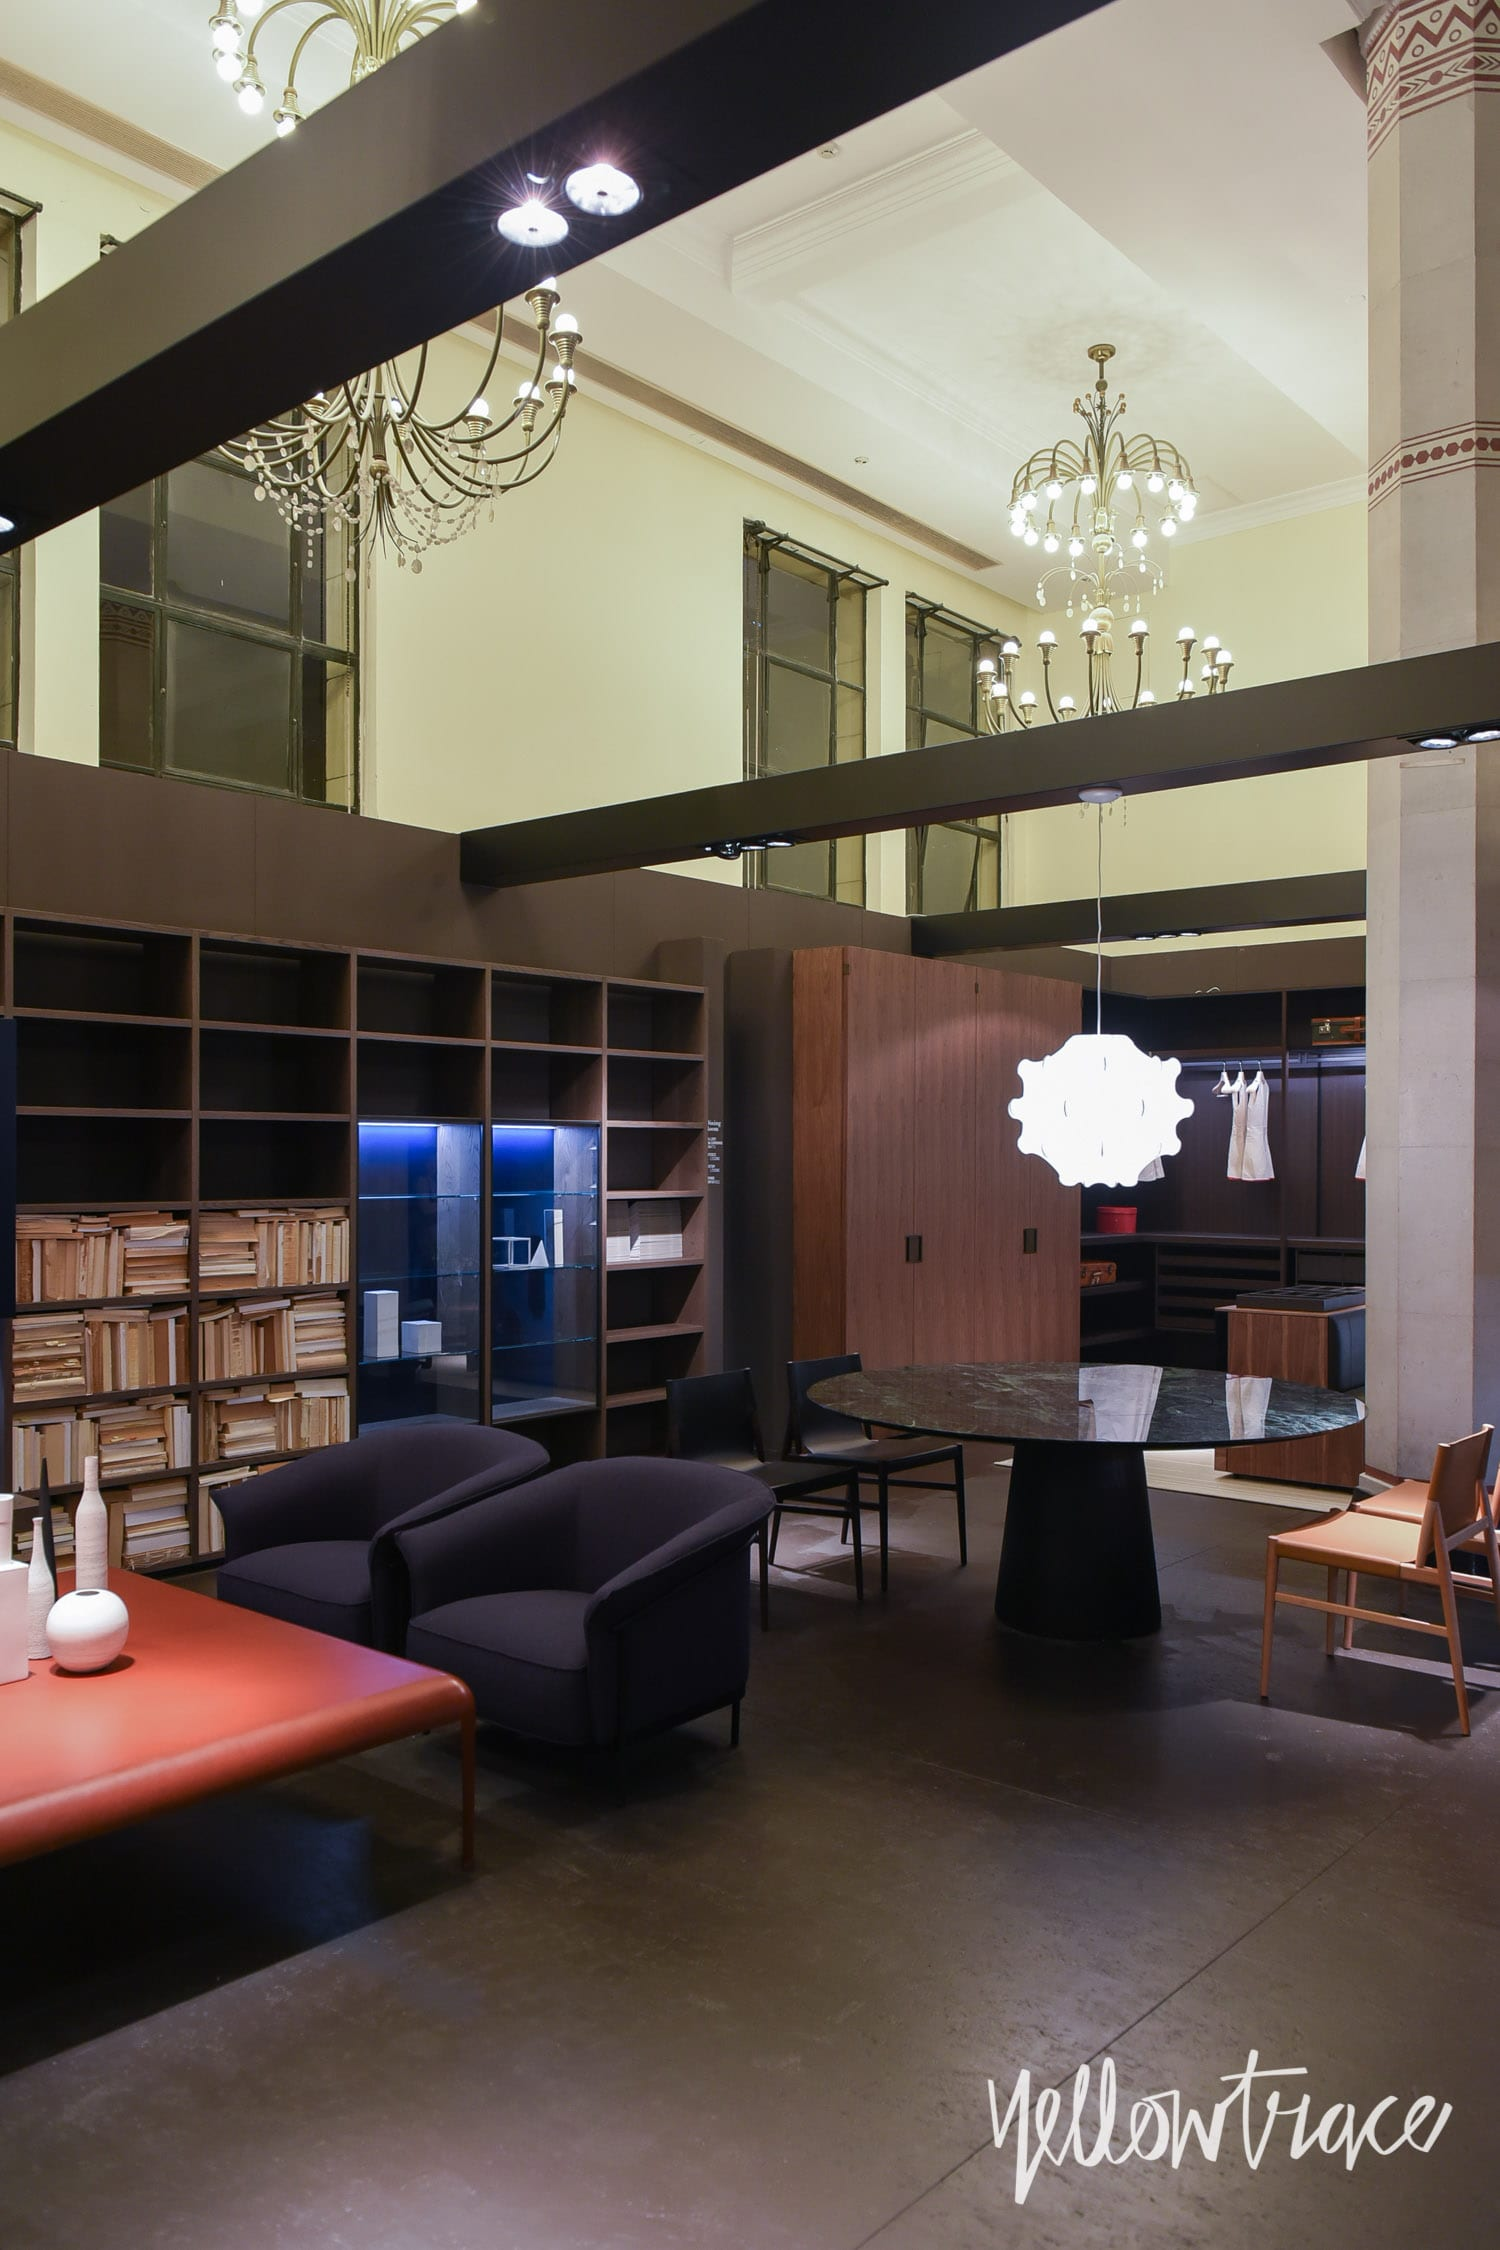 Highlights from salone del mobile milano shanghai 2017 for Salone mobile shanghai